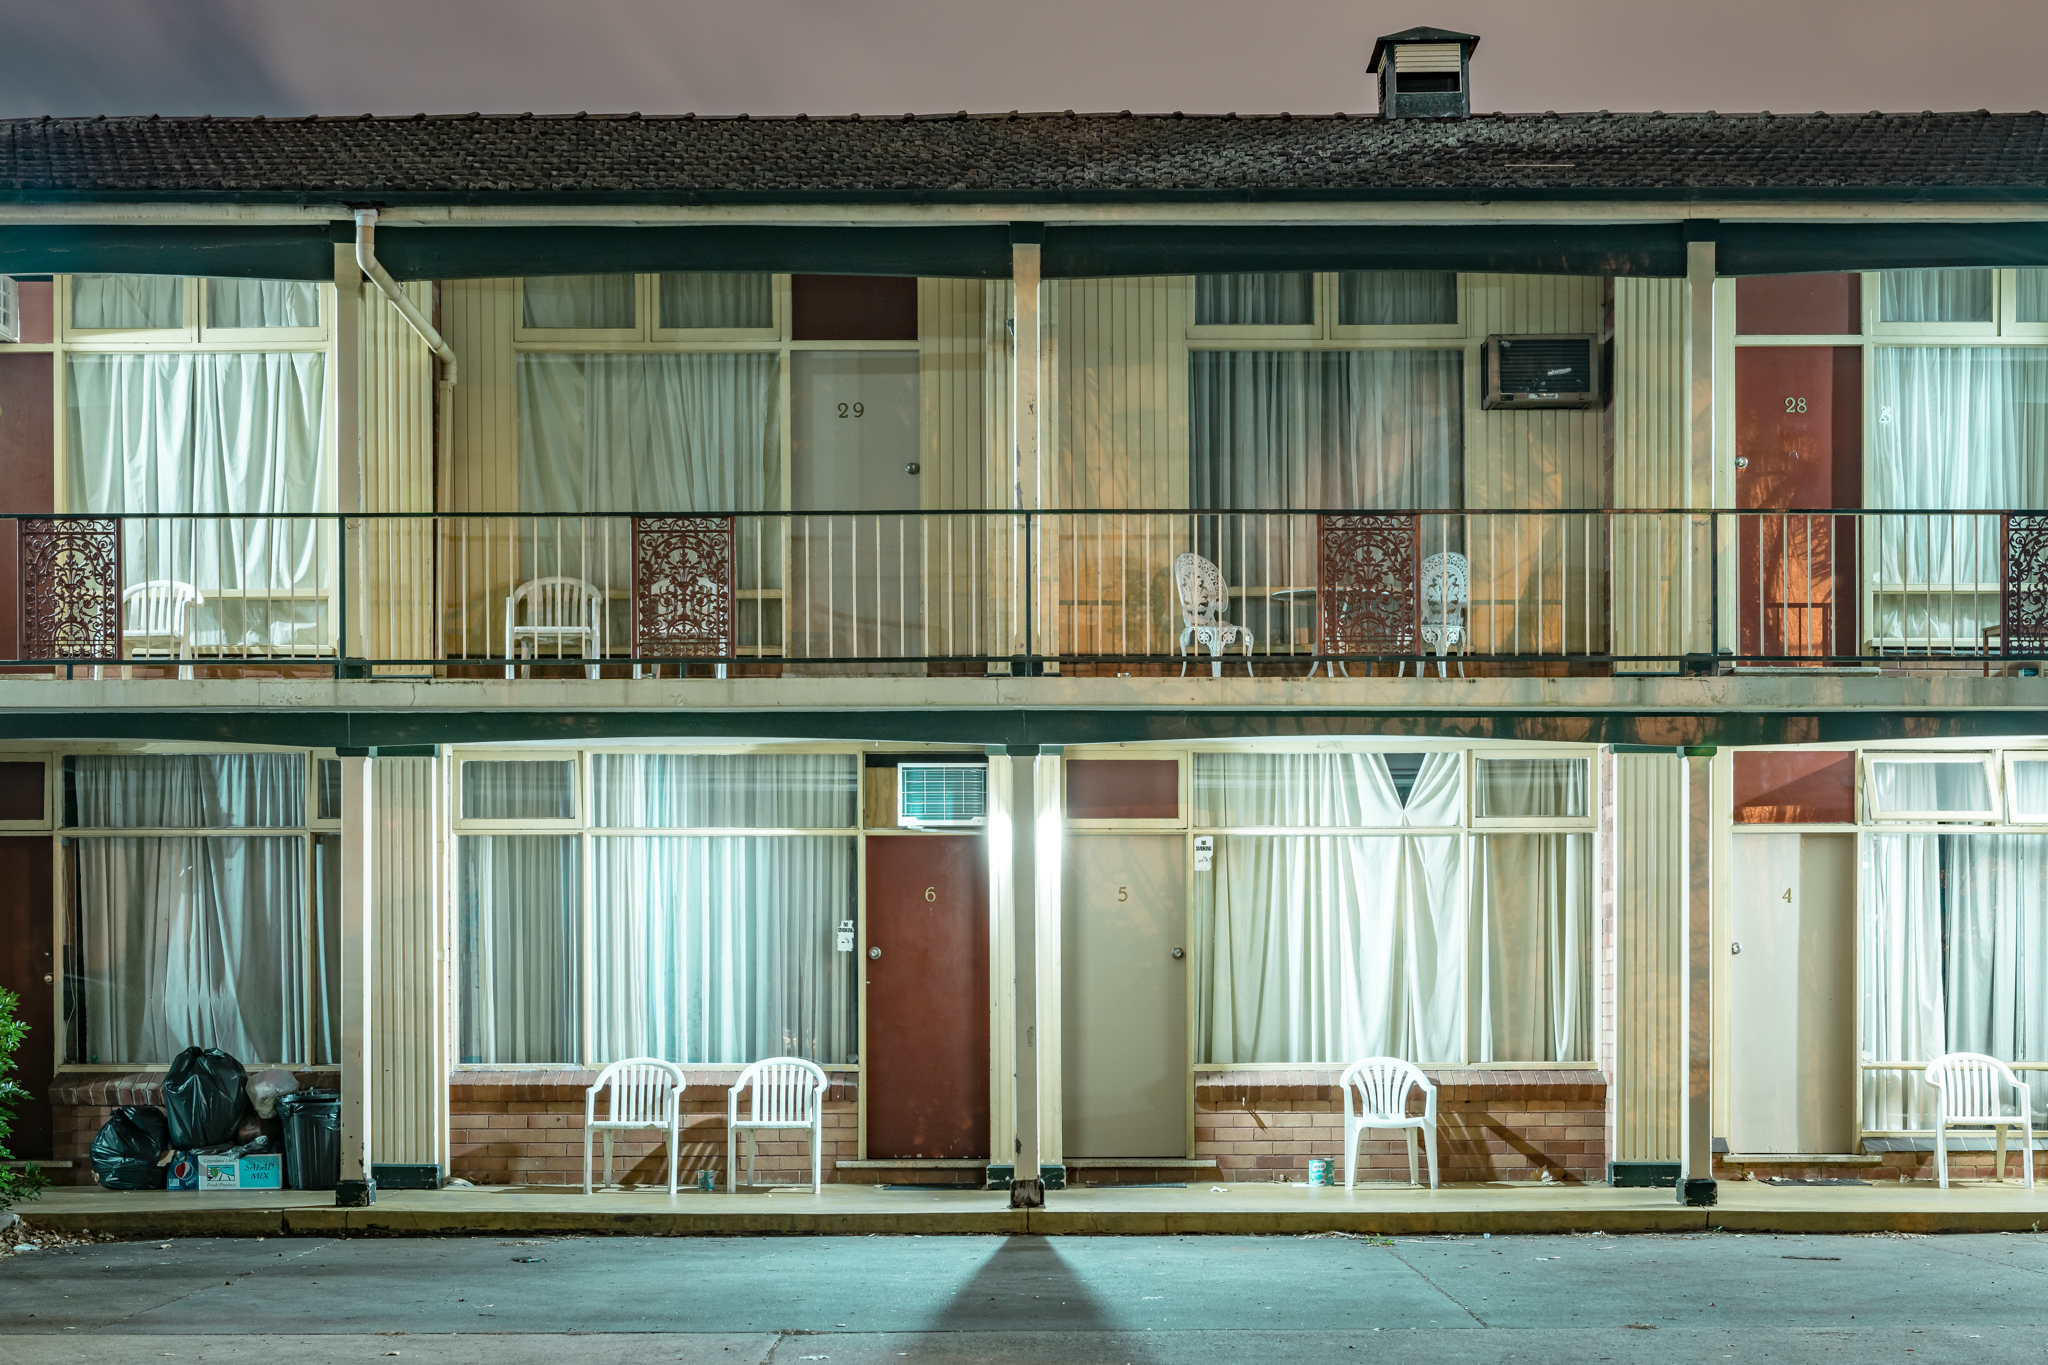 The Fontainebleau Motor Inn, Liverpool | With a stay at The Fontaine Bleau Inn in Casula, you'll be convenient to Westfield Liverpool and Liverpool Hospital. This motel is within the vicinity of Bankstown Golf Club and Crest Sporting Complex. Make yourself at home in one of the 30 guestrooms. Self parking (subject to charges) is available onsite. $99 - $150 per night.